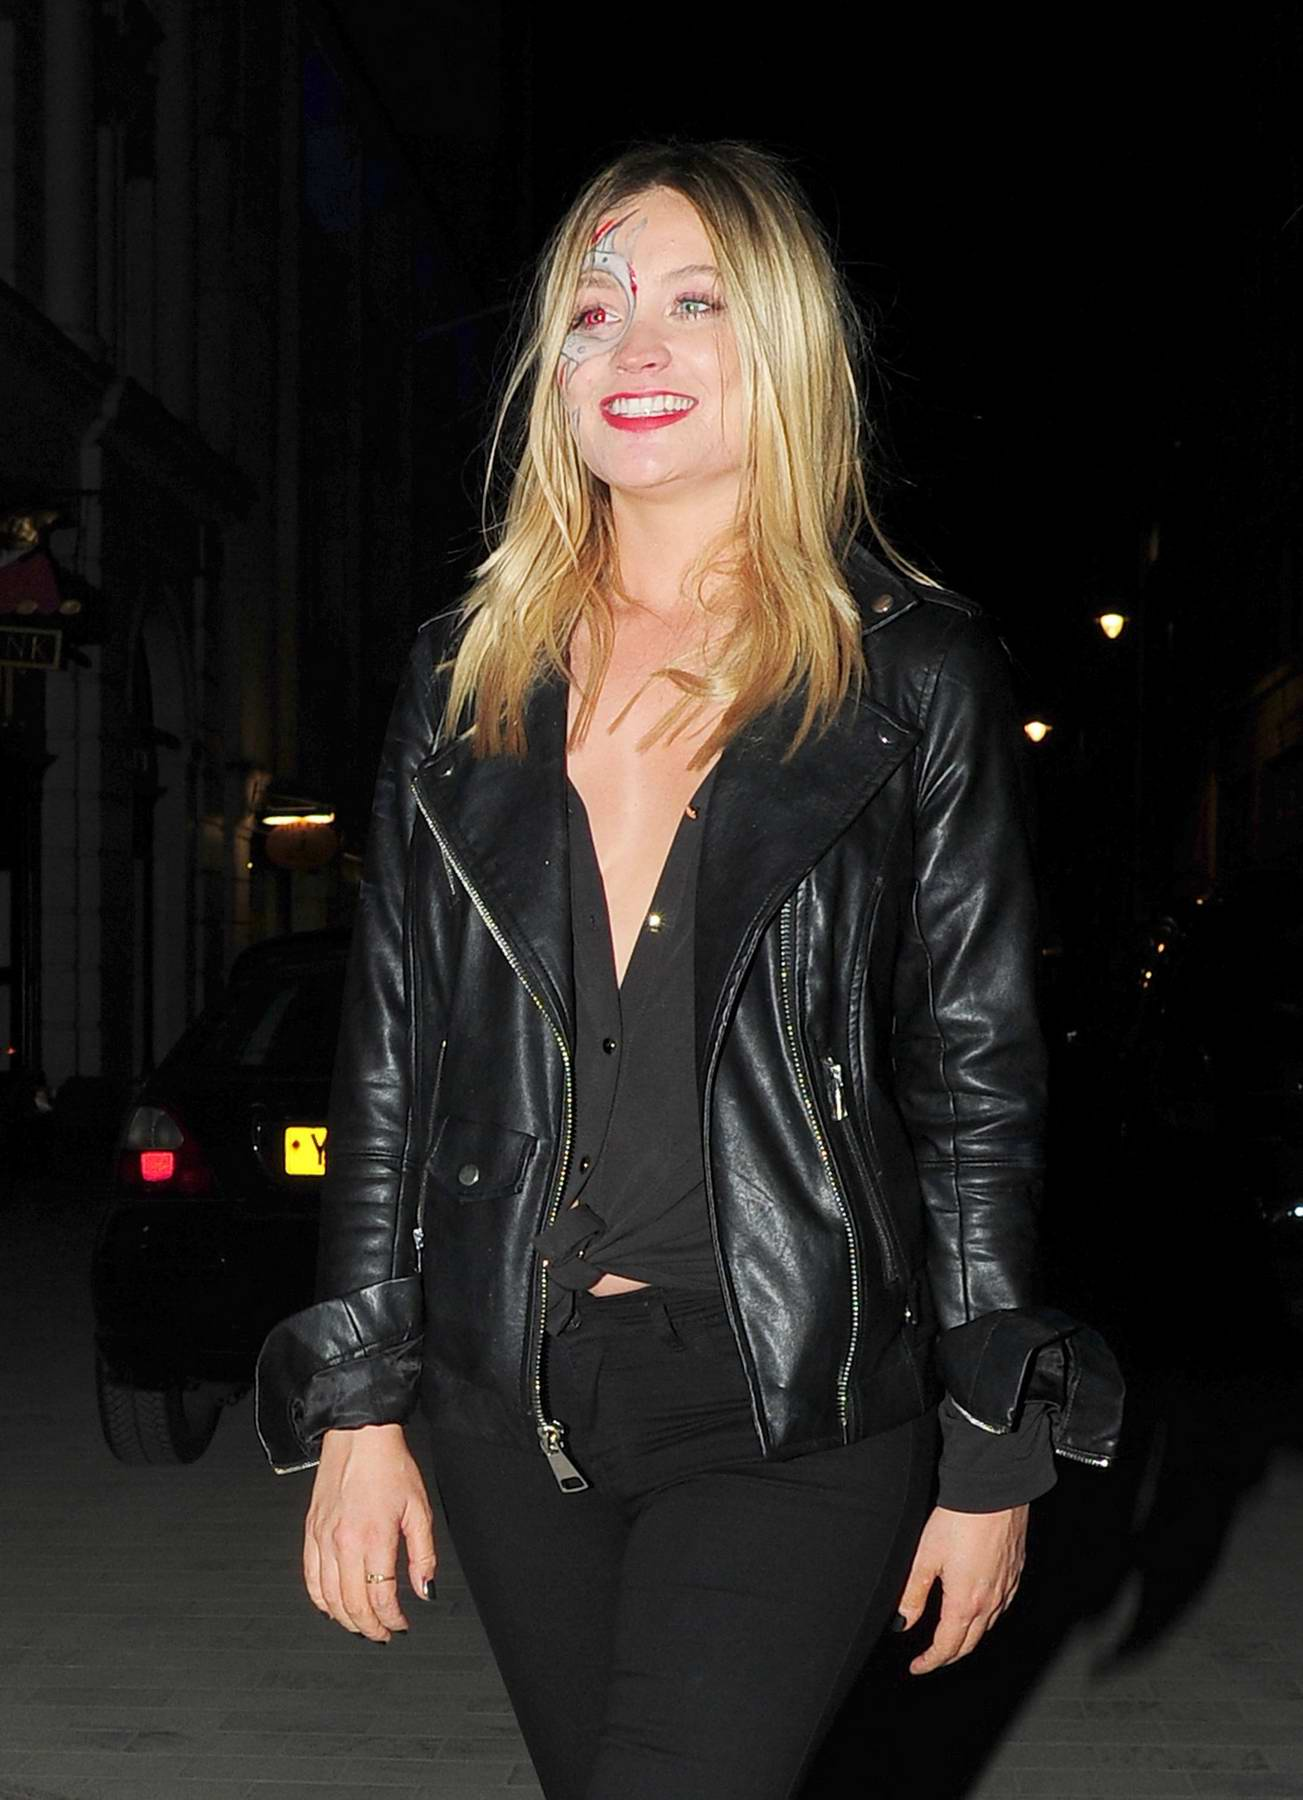 Laura Whitmore at Jonathan Ross 2017 Halloween party in London